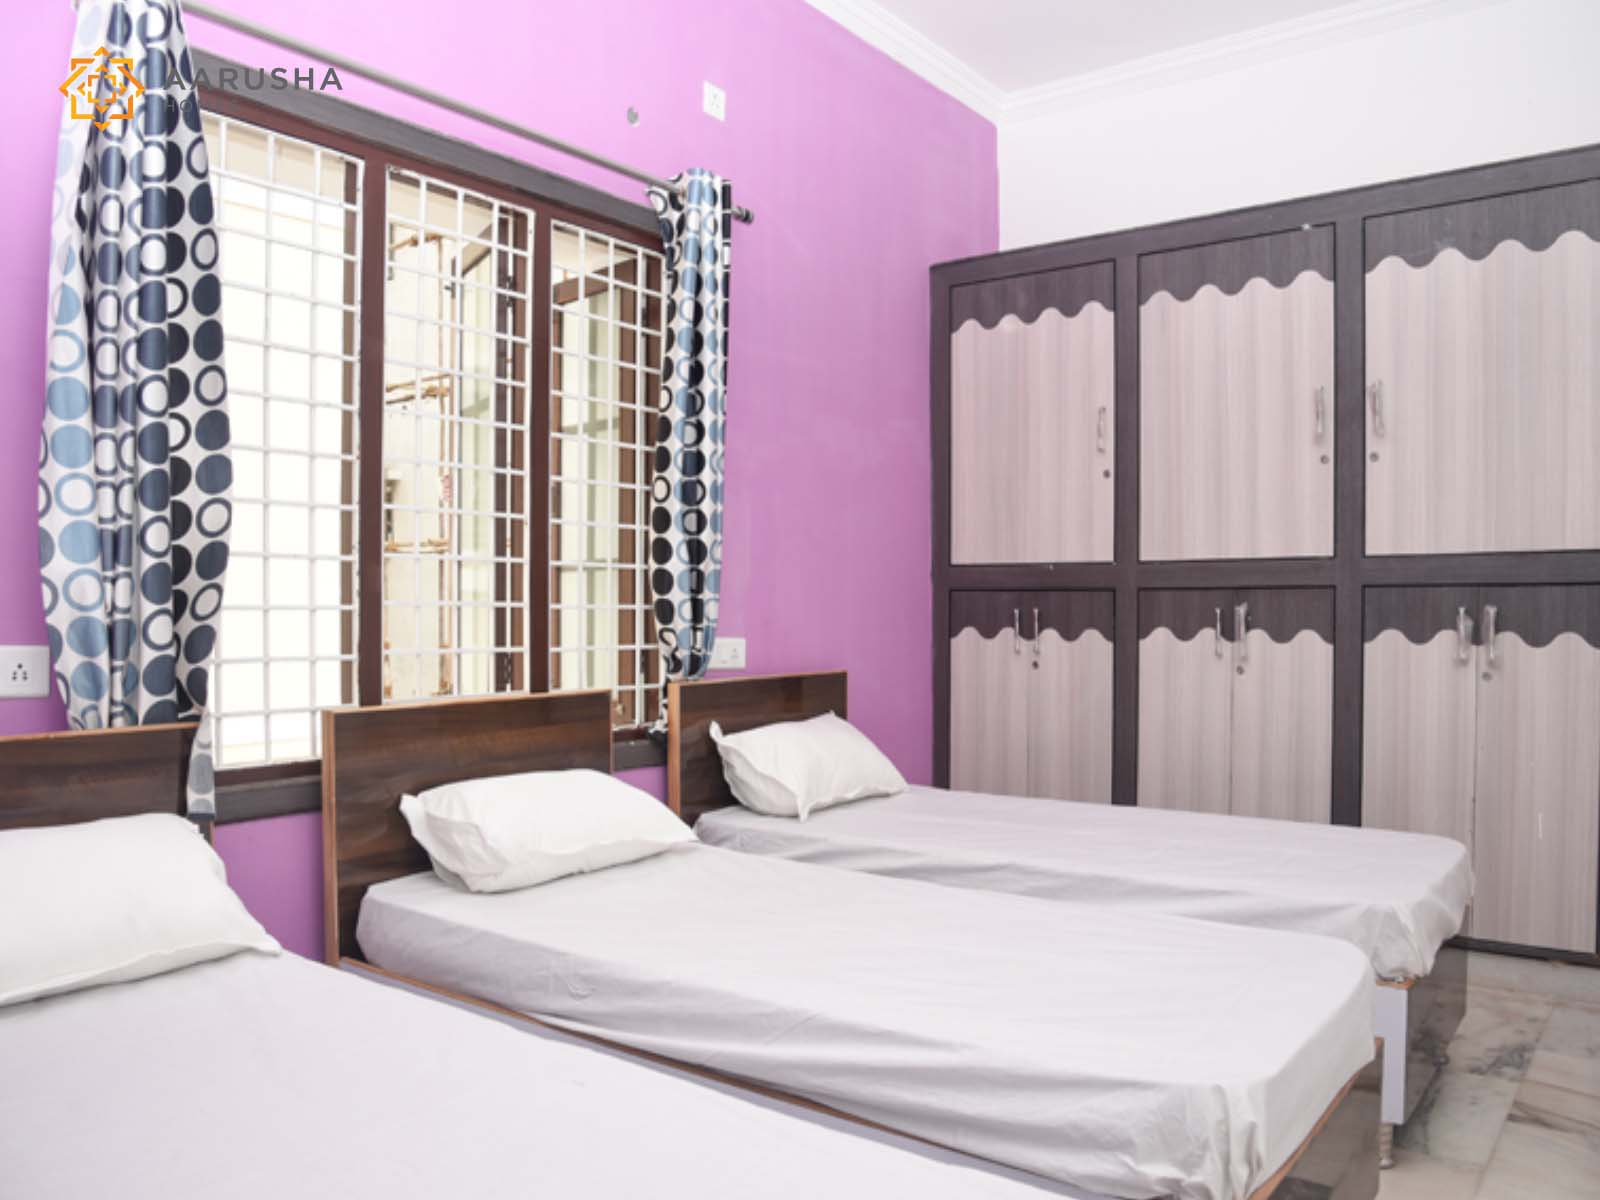 PG & Hostel For Men In Madhapur, Hyderabad